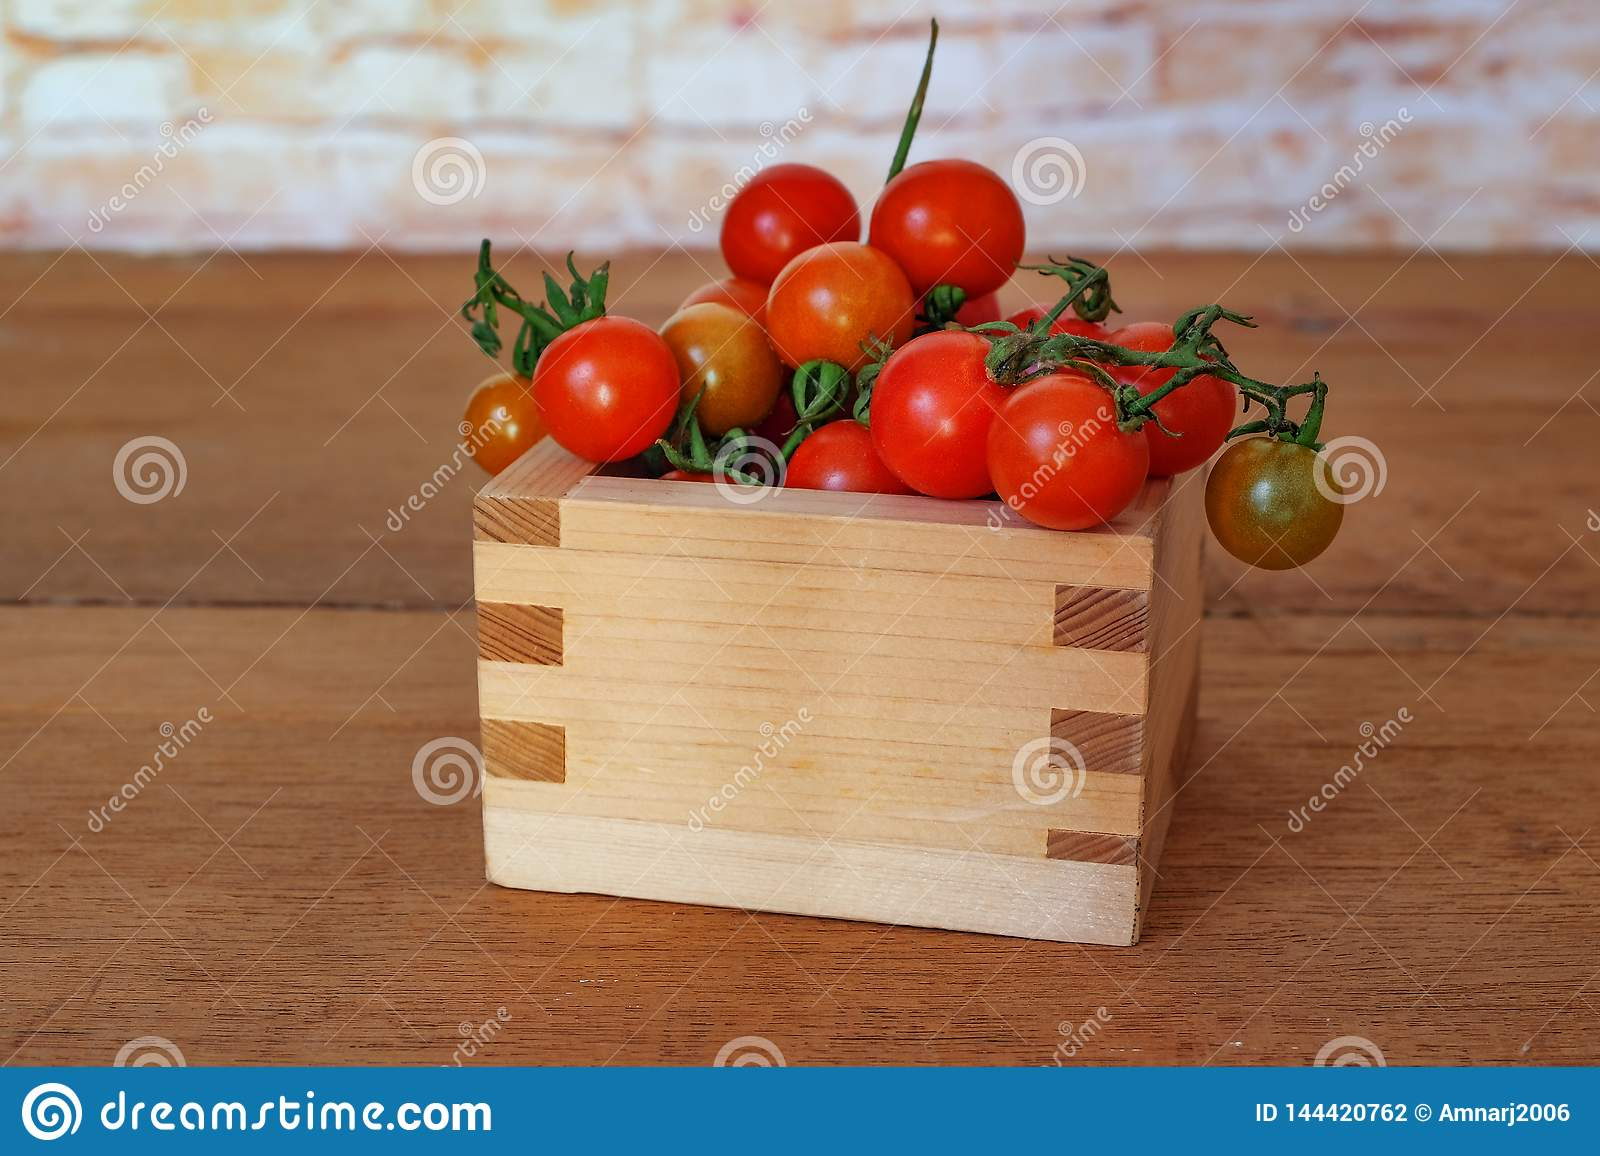 Small Tomato spill out of wood box.Food